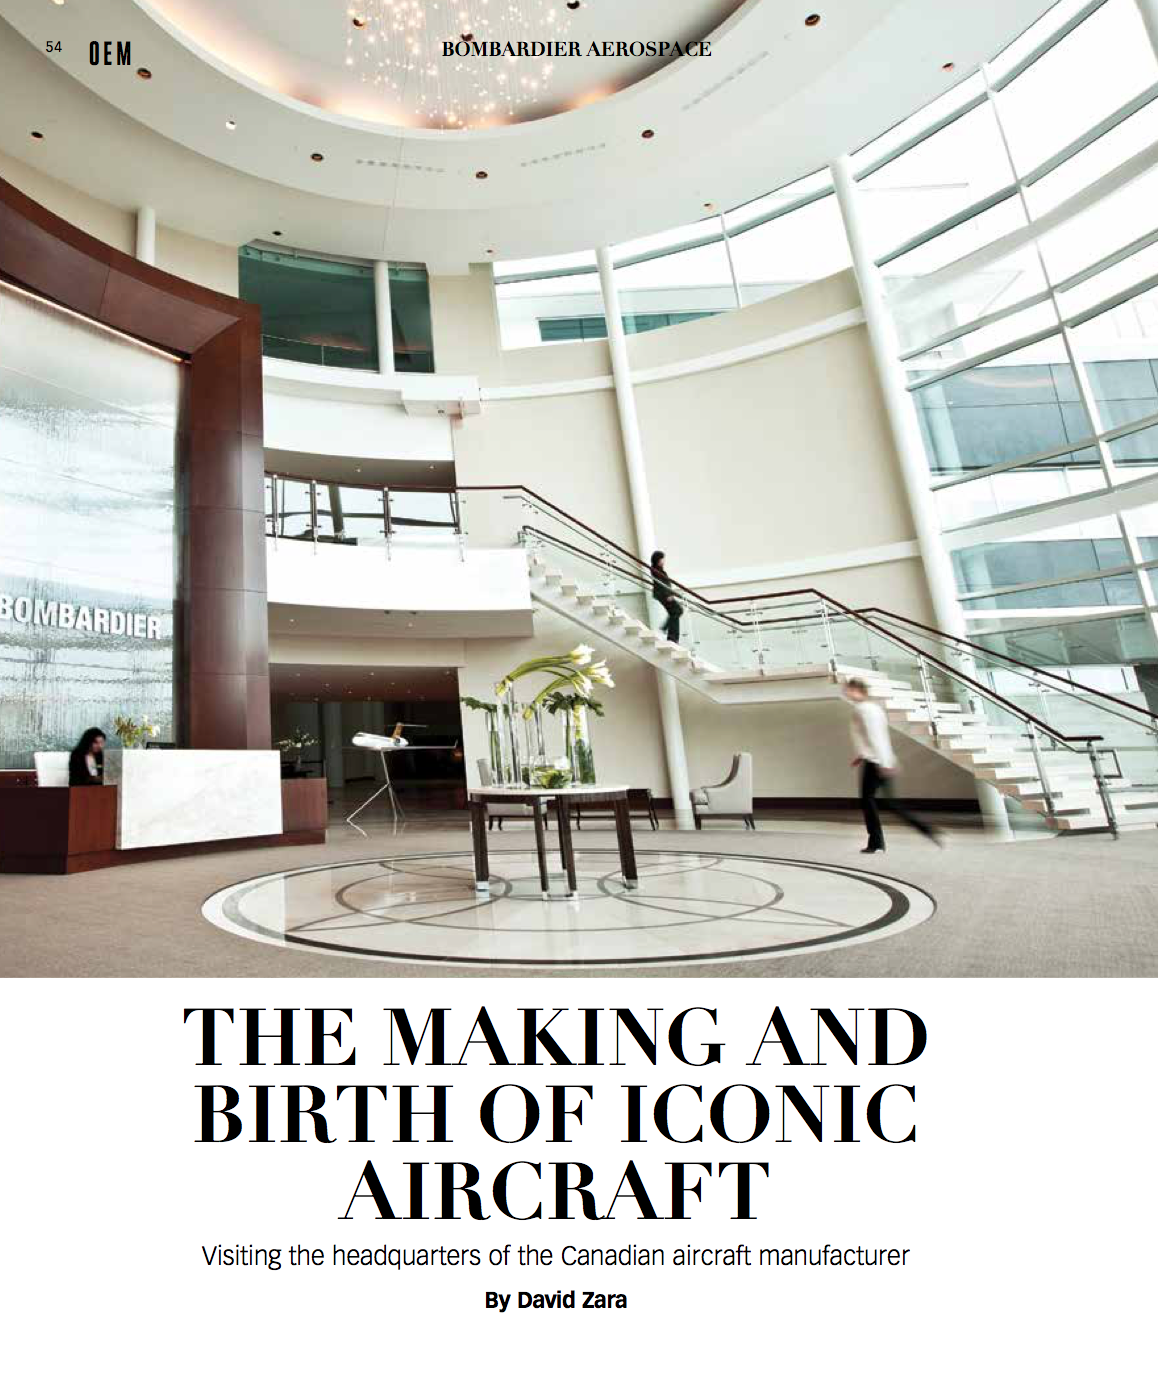 The making and birth of iconic aircraft